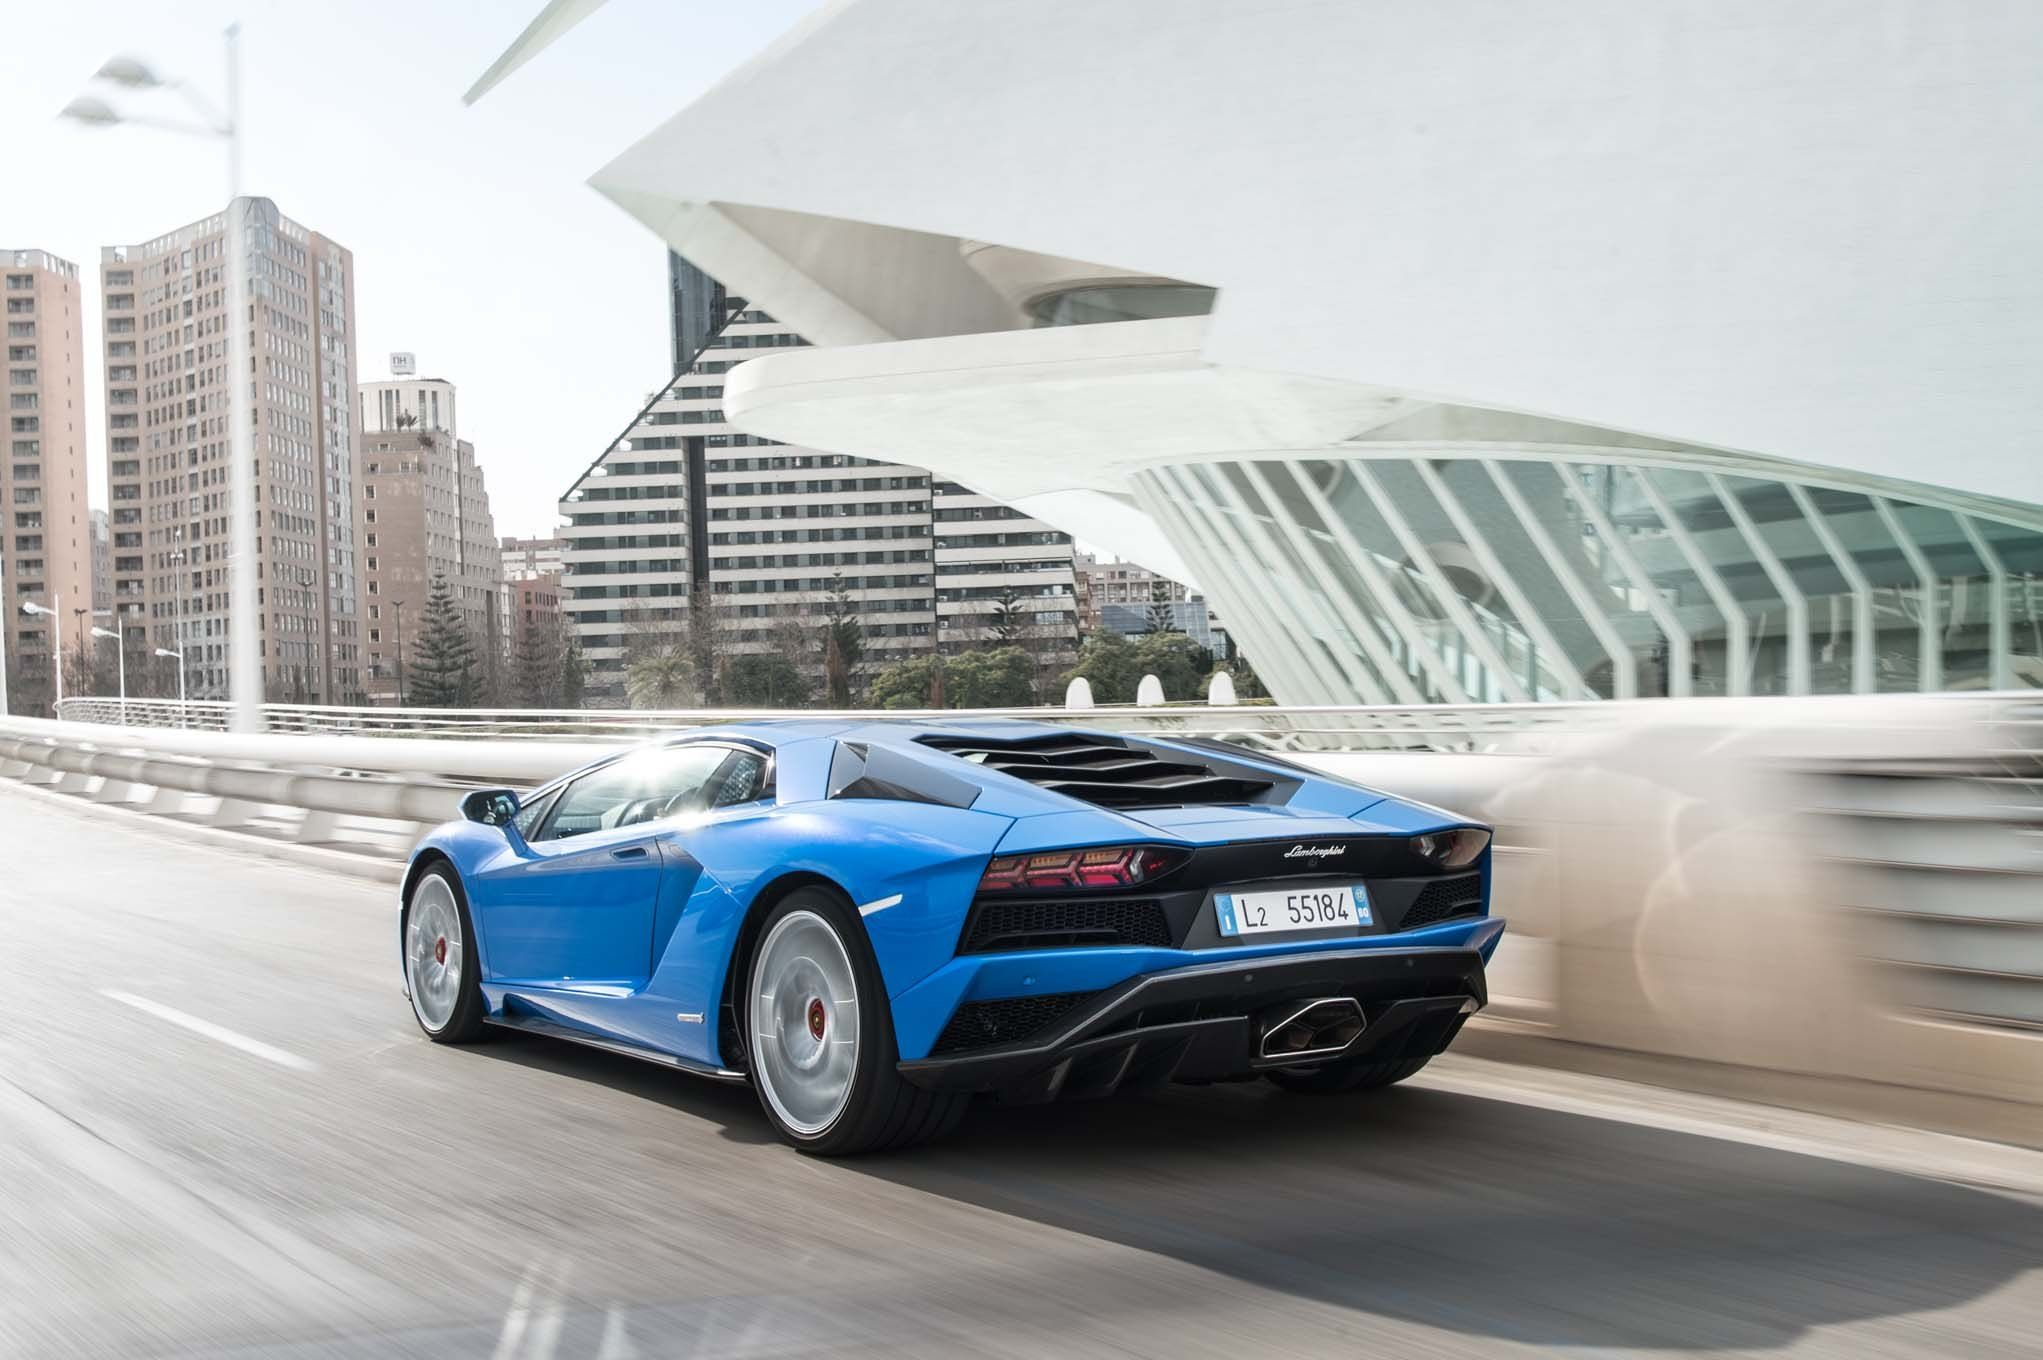 The Tragedy Of Supercars Stuck In The City Super Cars Auto Body Shop Auto Body Repair